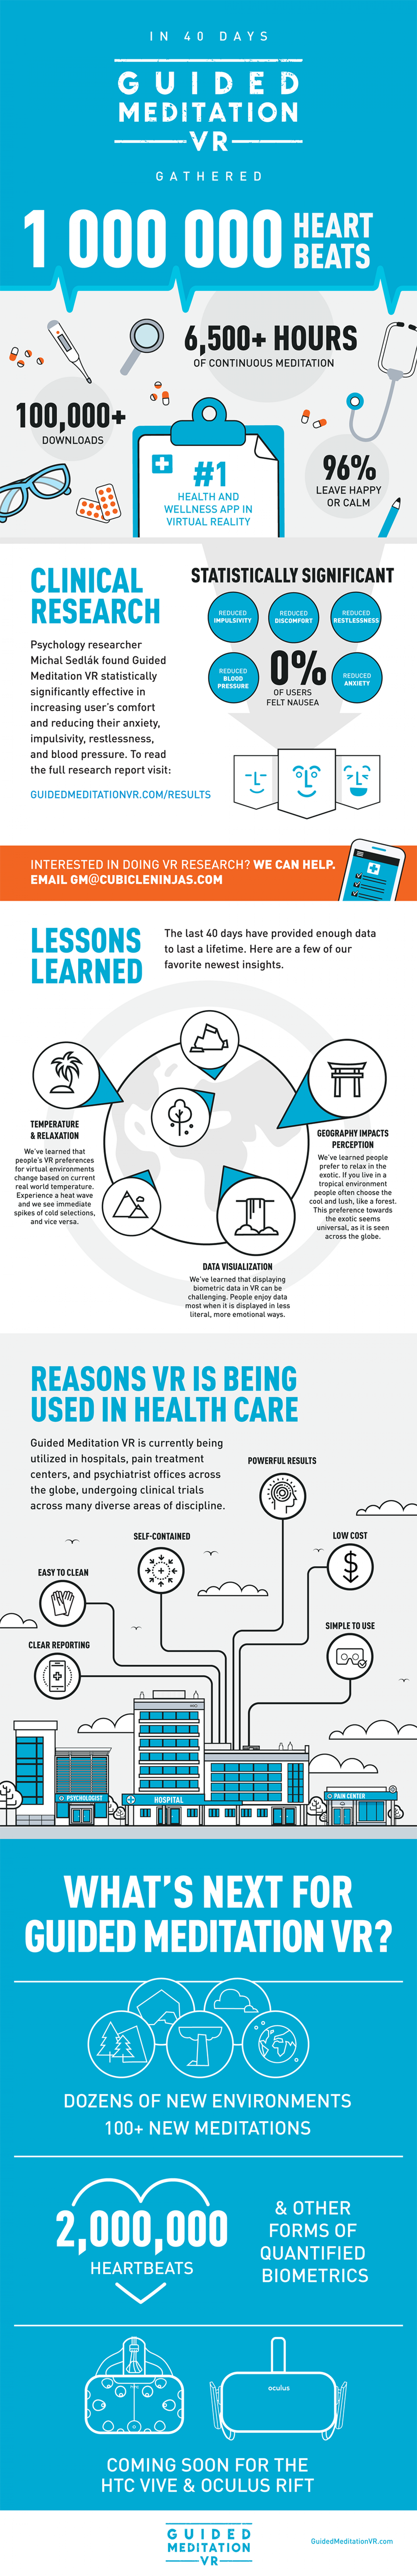 Guided Meditation VR Gathers 1 Million Heartbeats Infographic